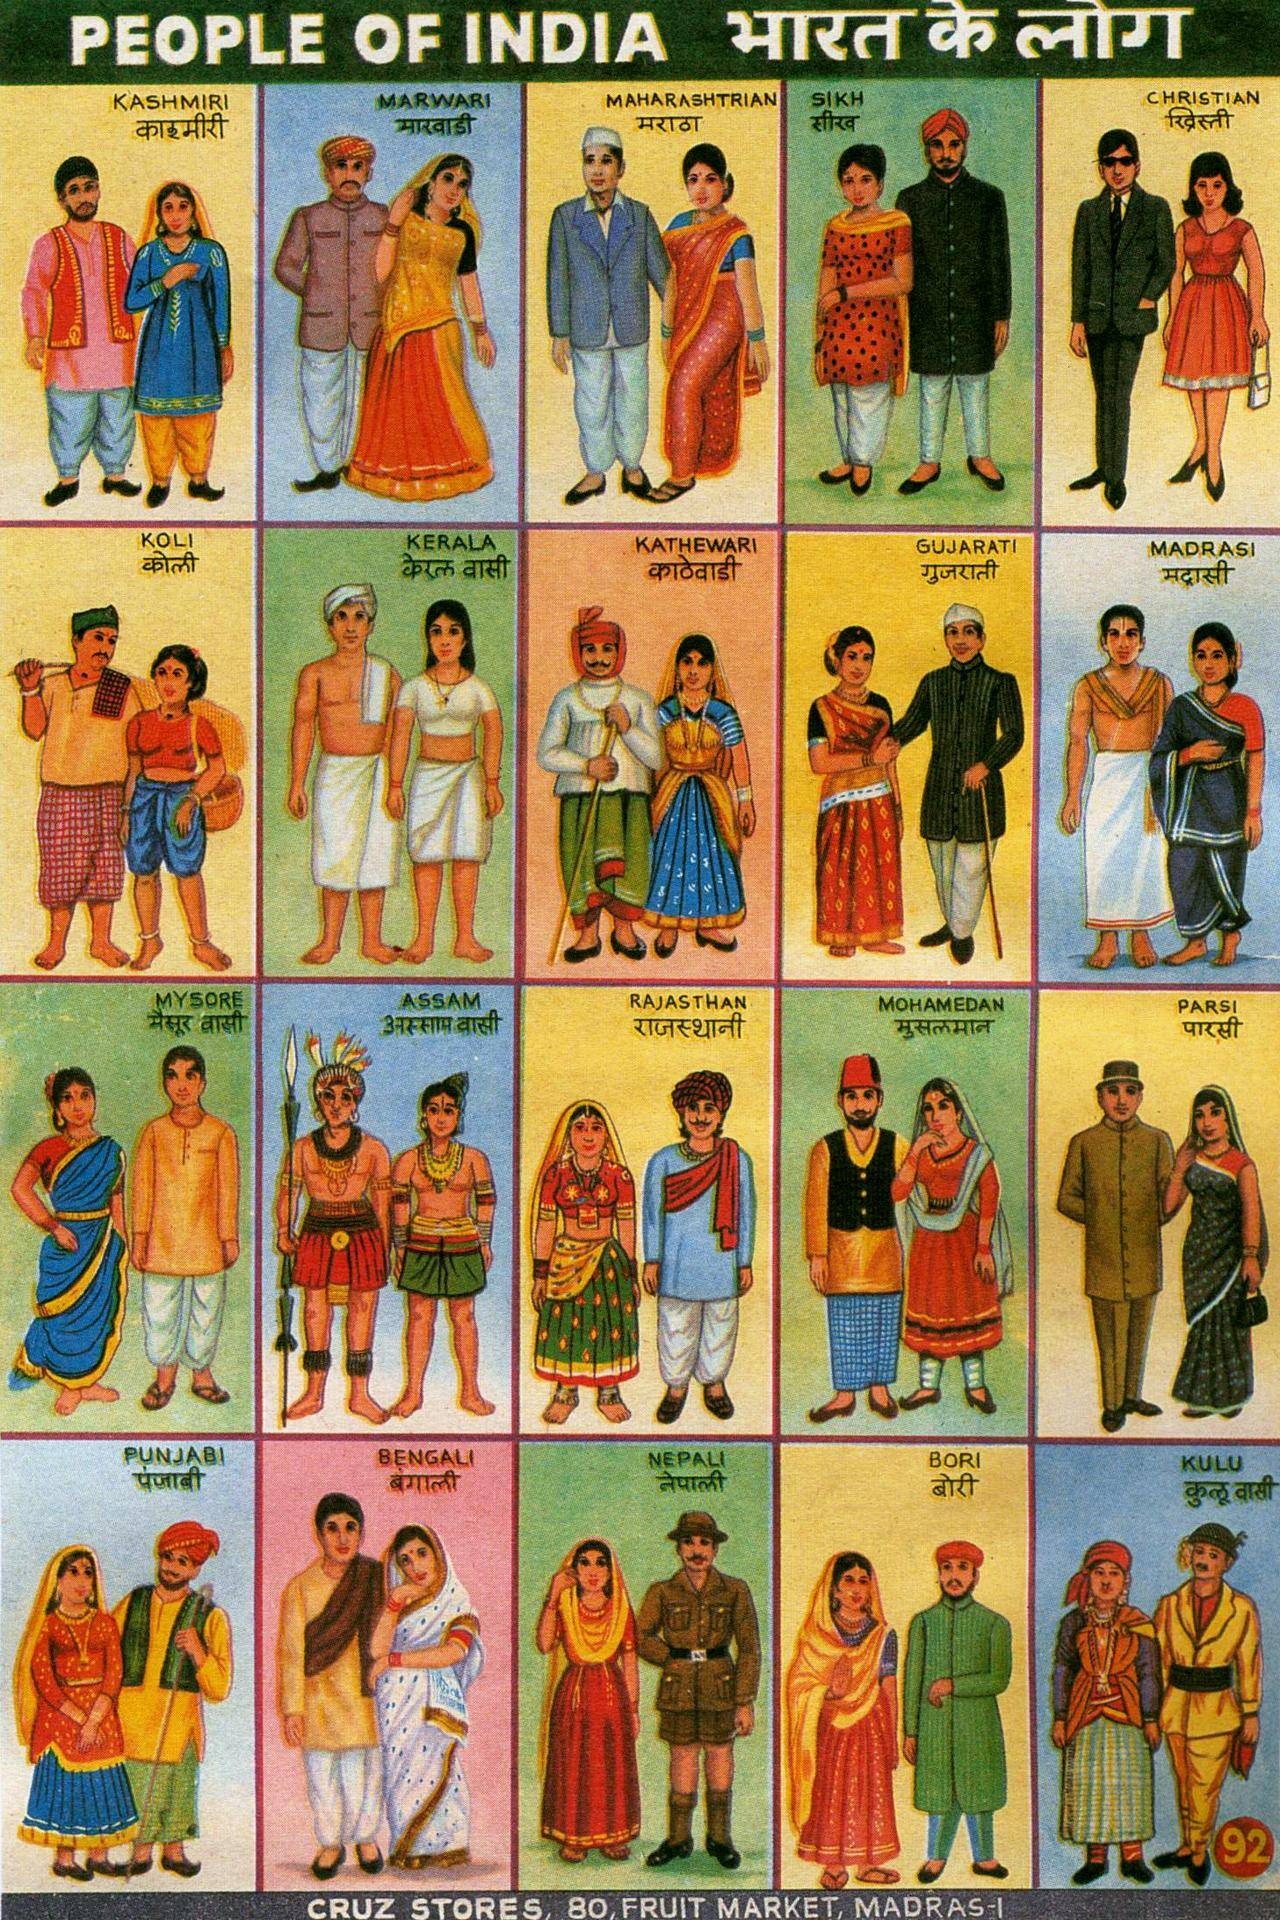 People of India Poster